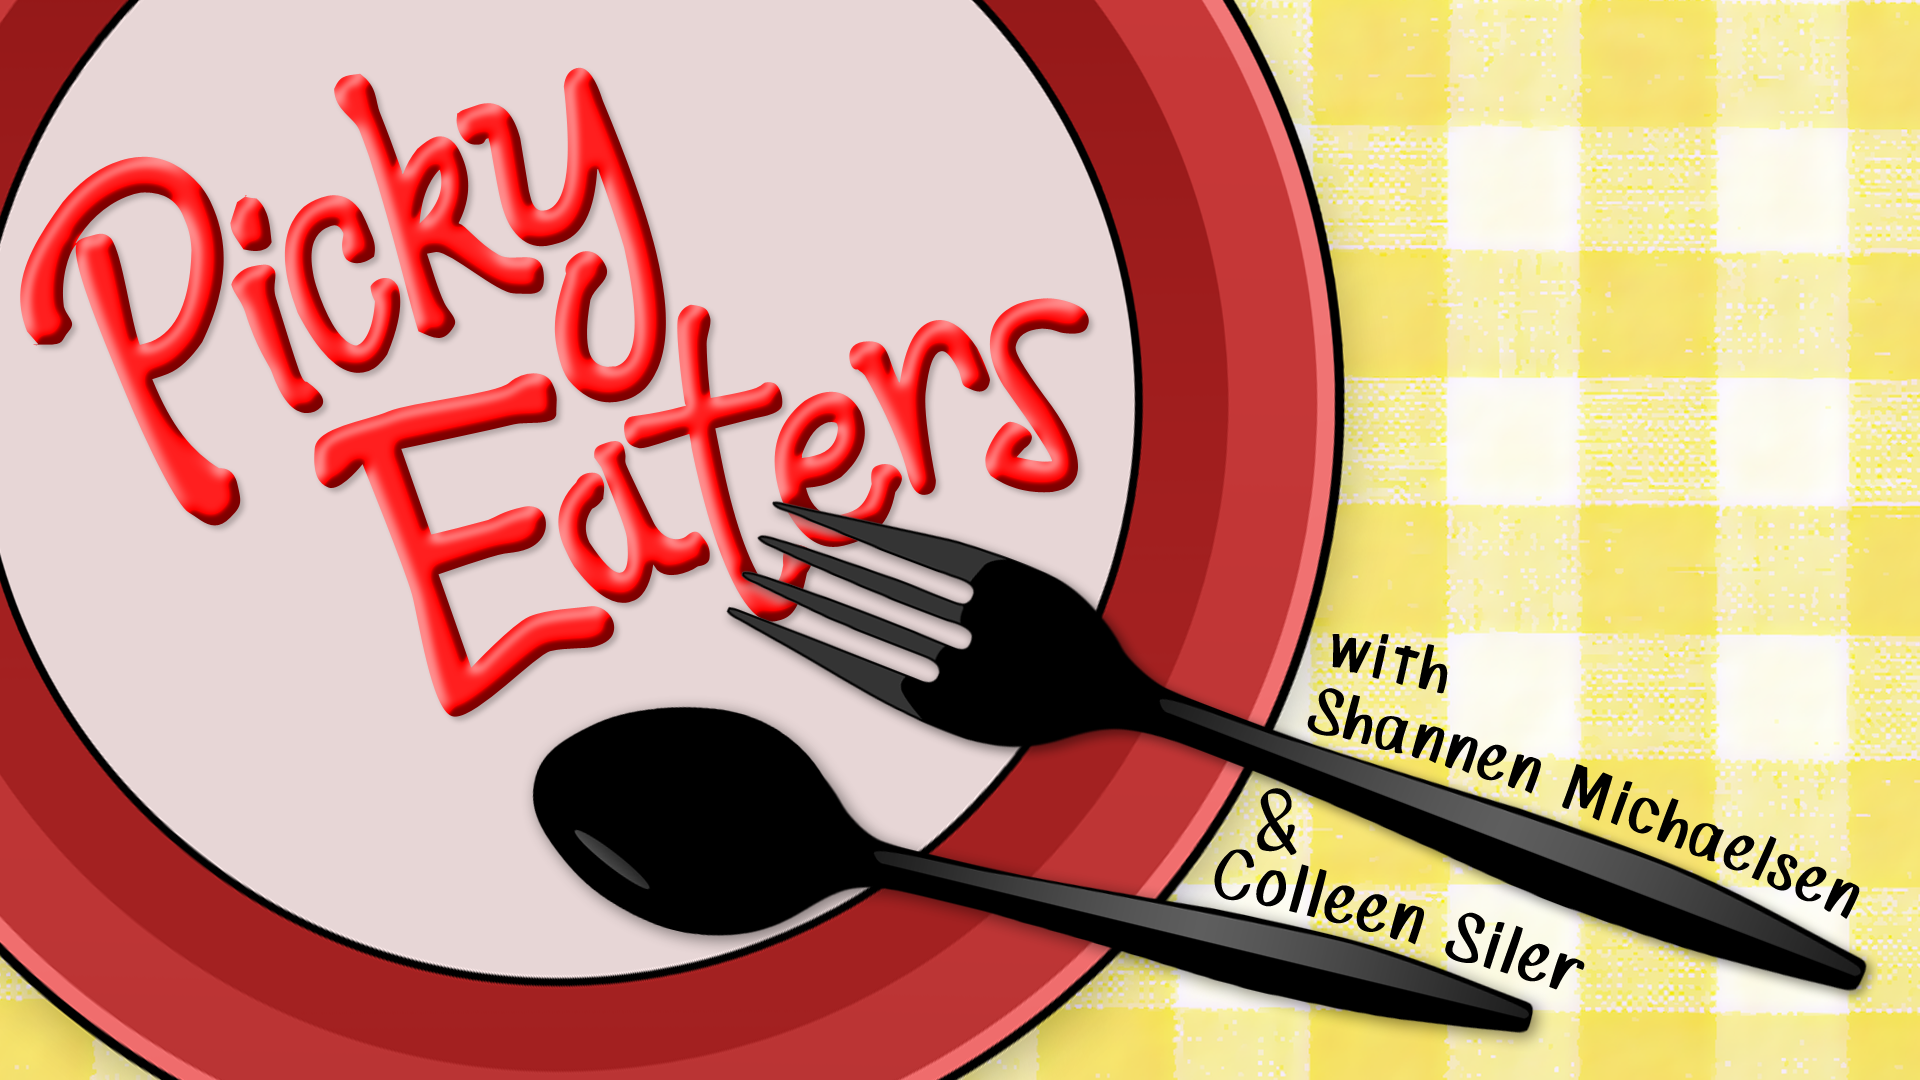 picky eaters logo